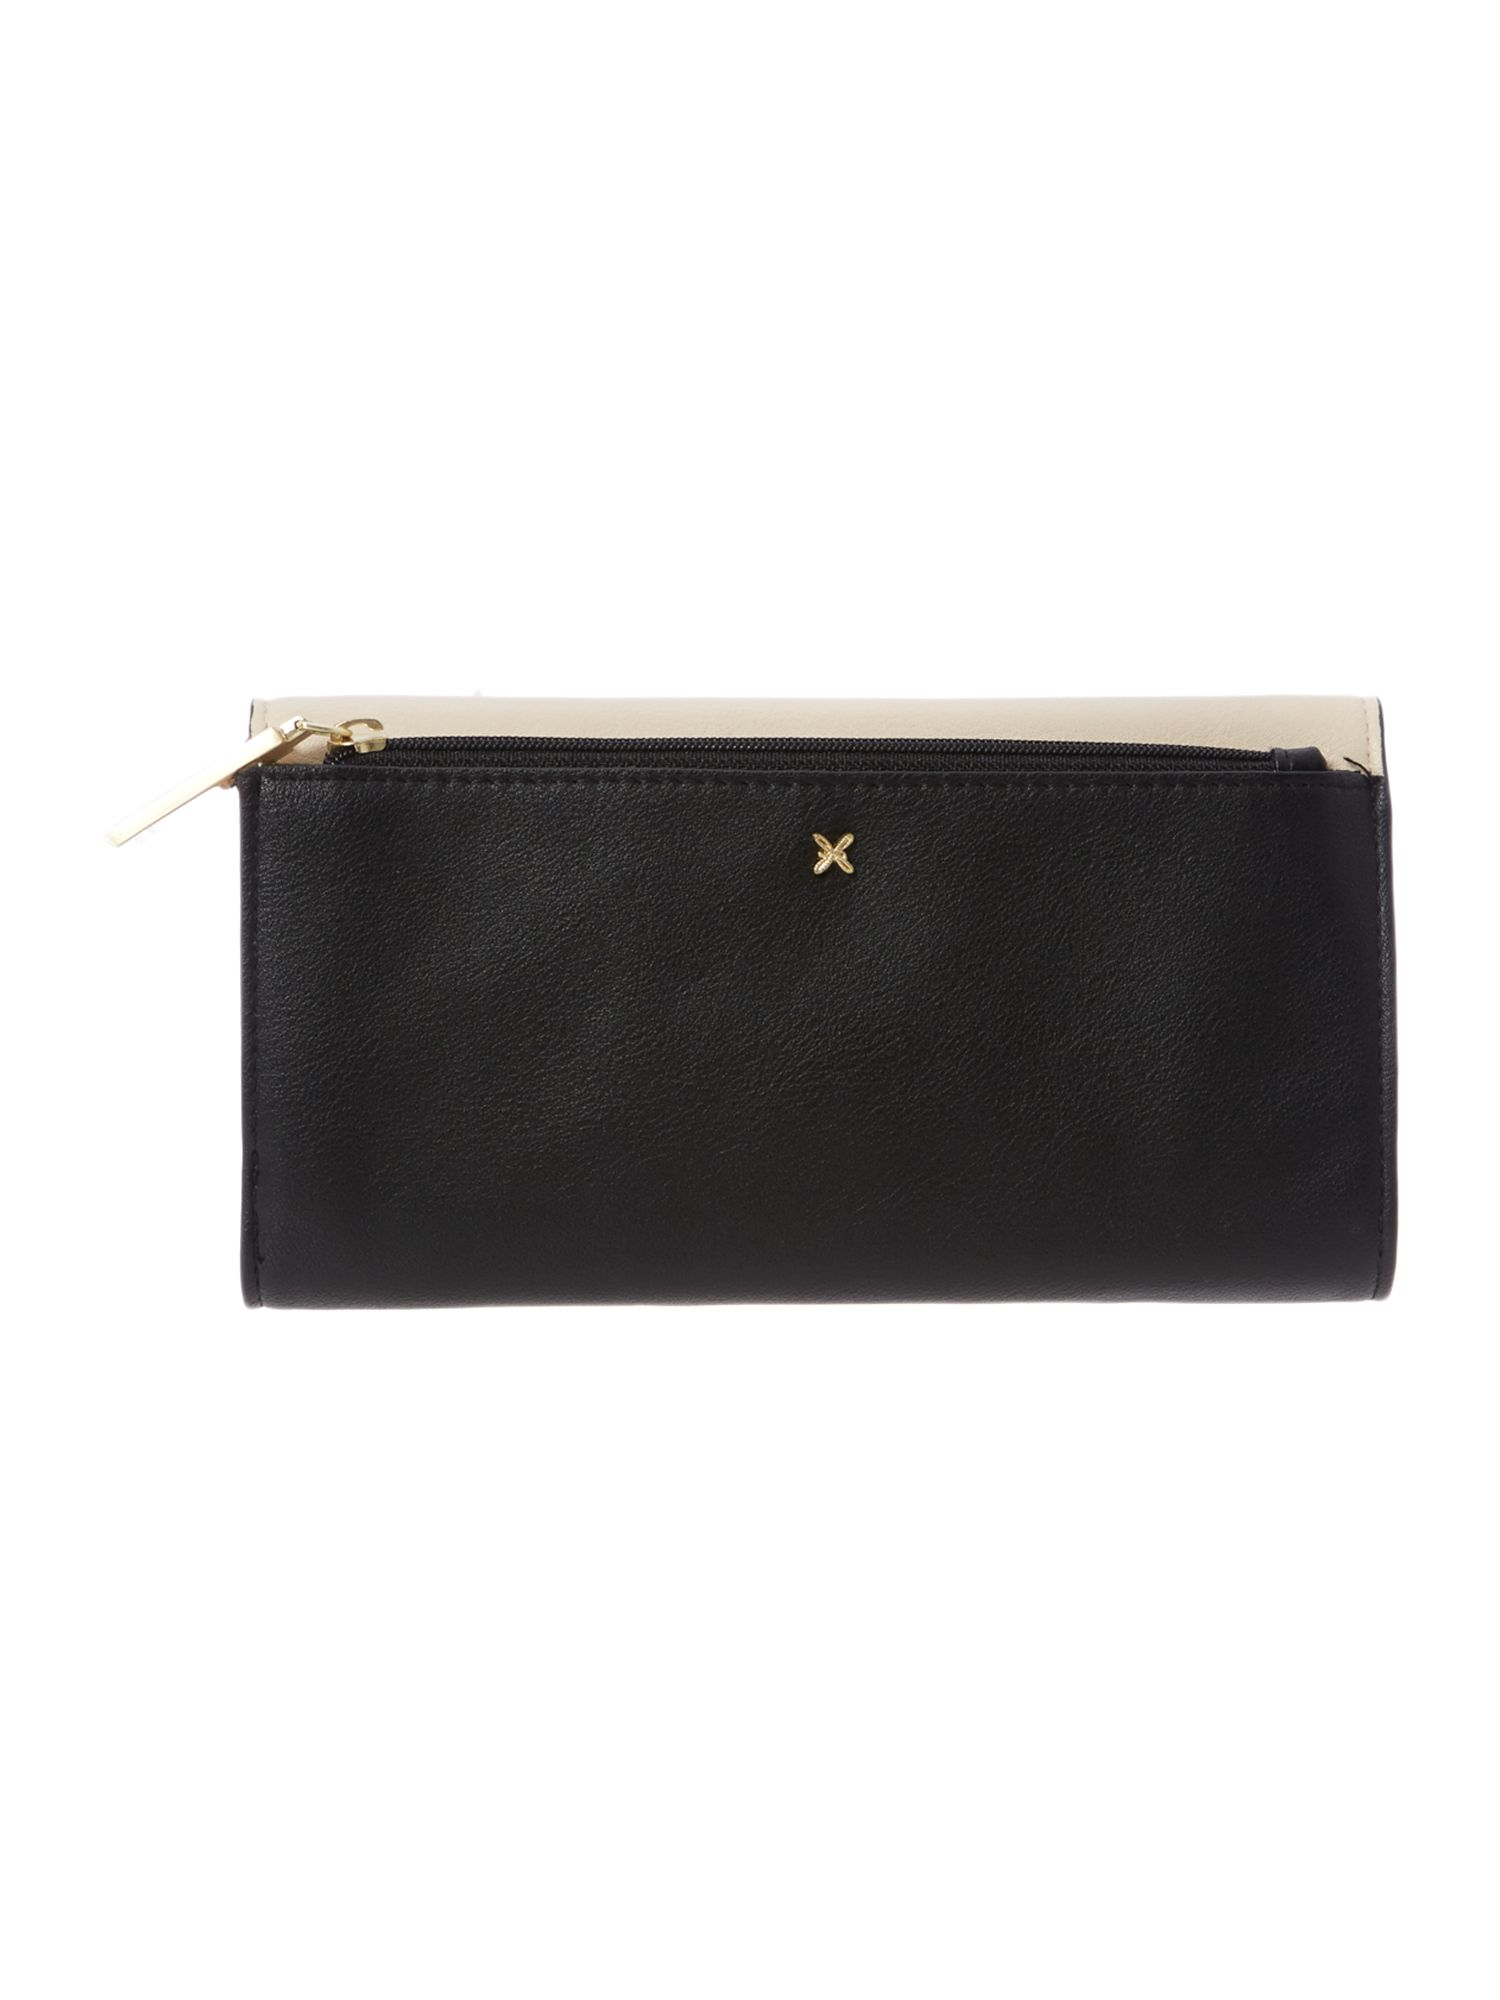 Sadie monochrome large flapover purse